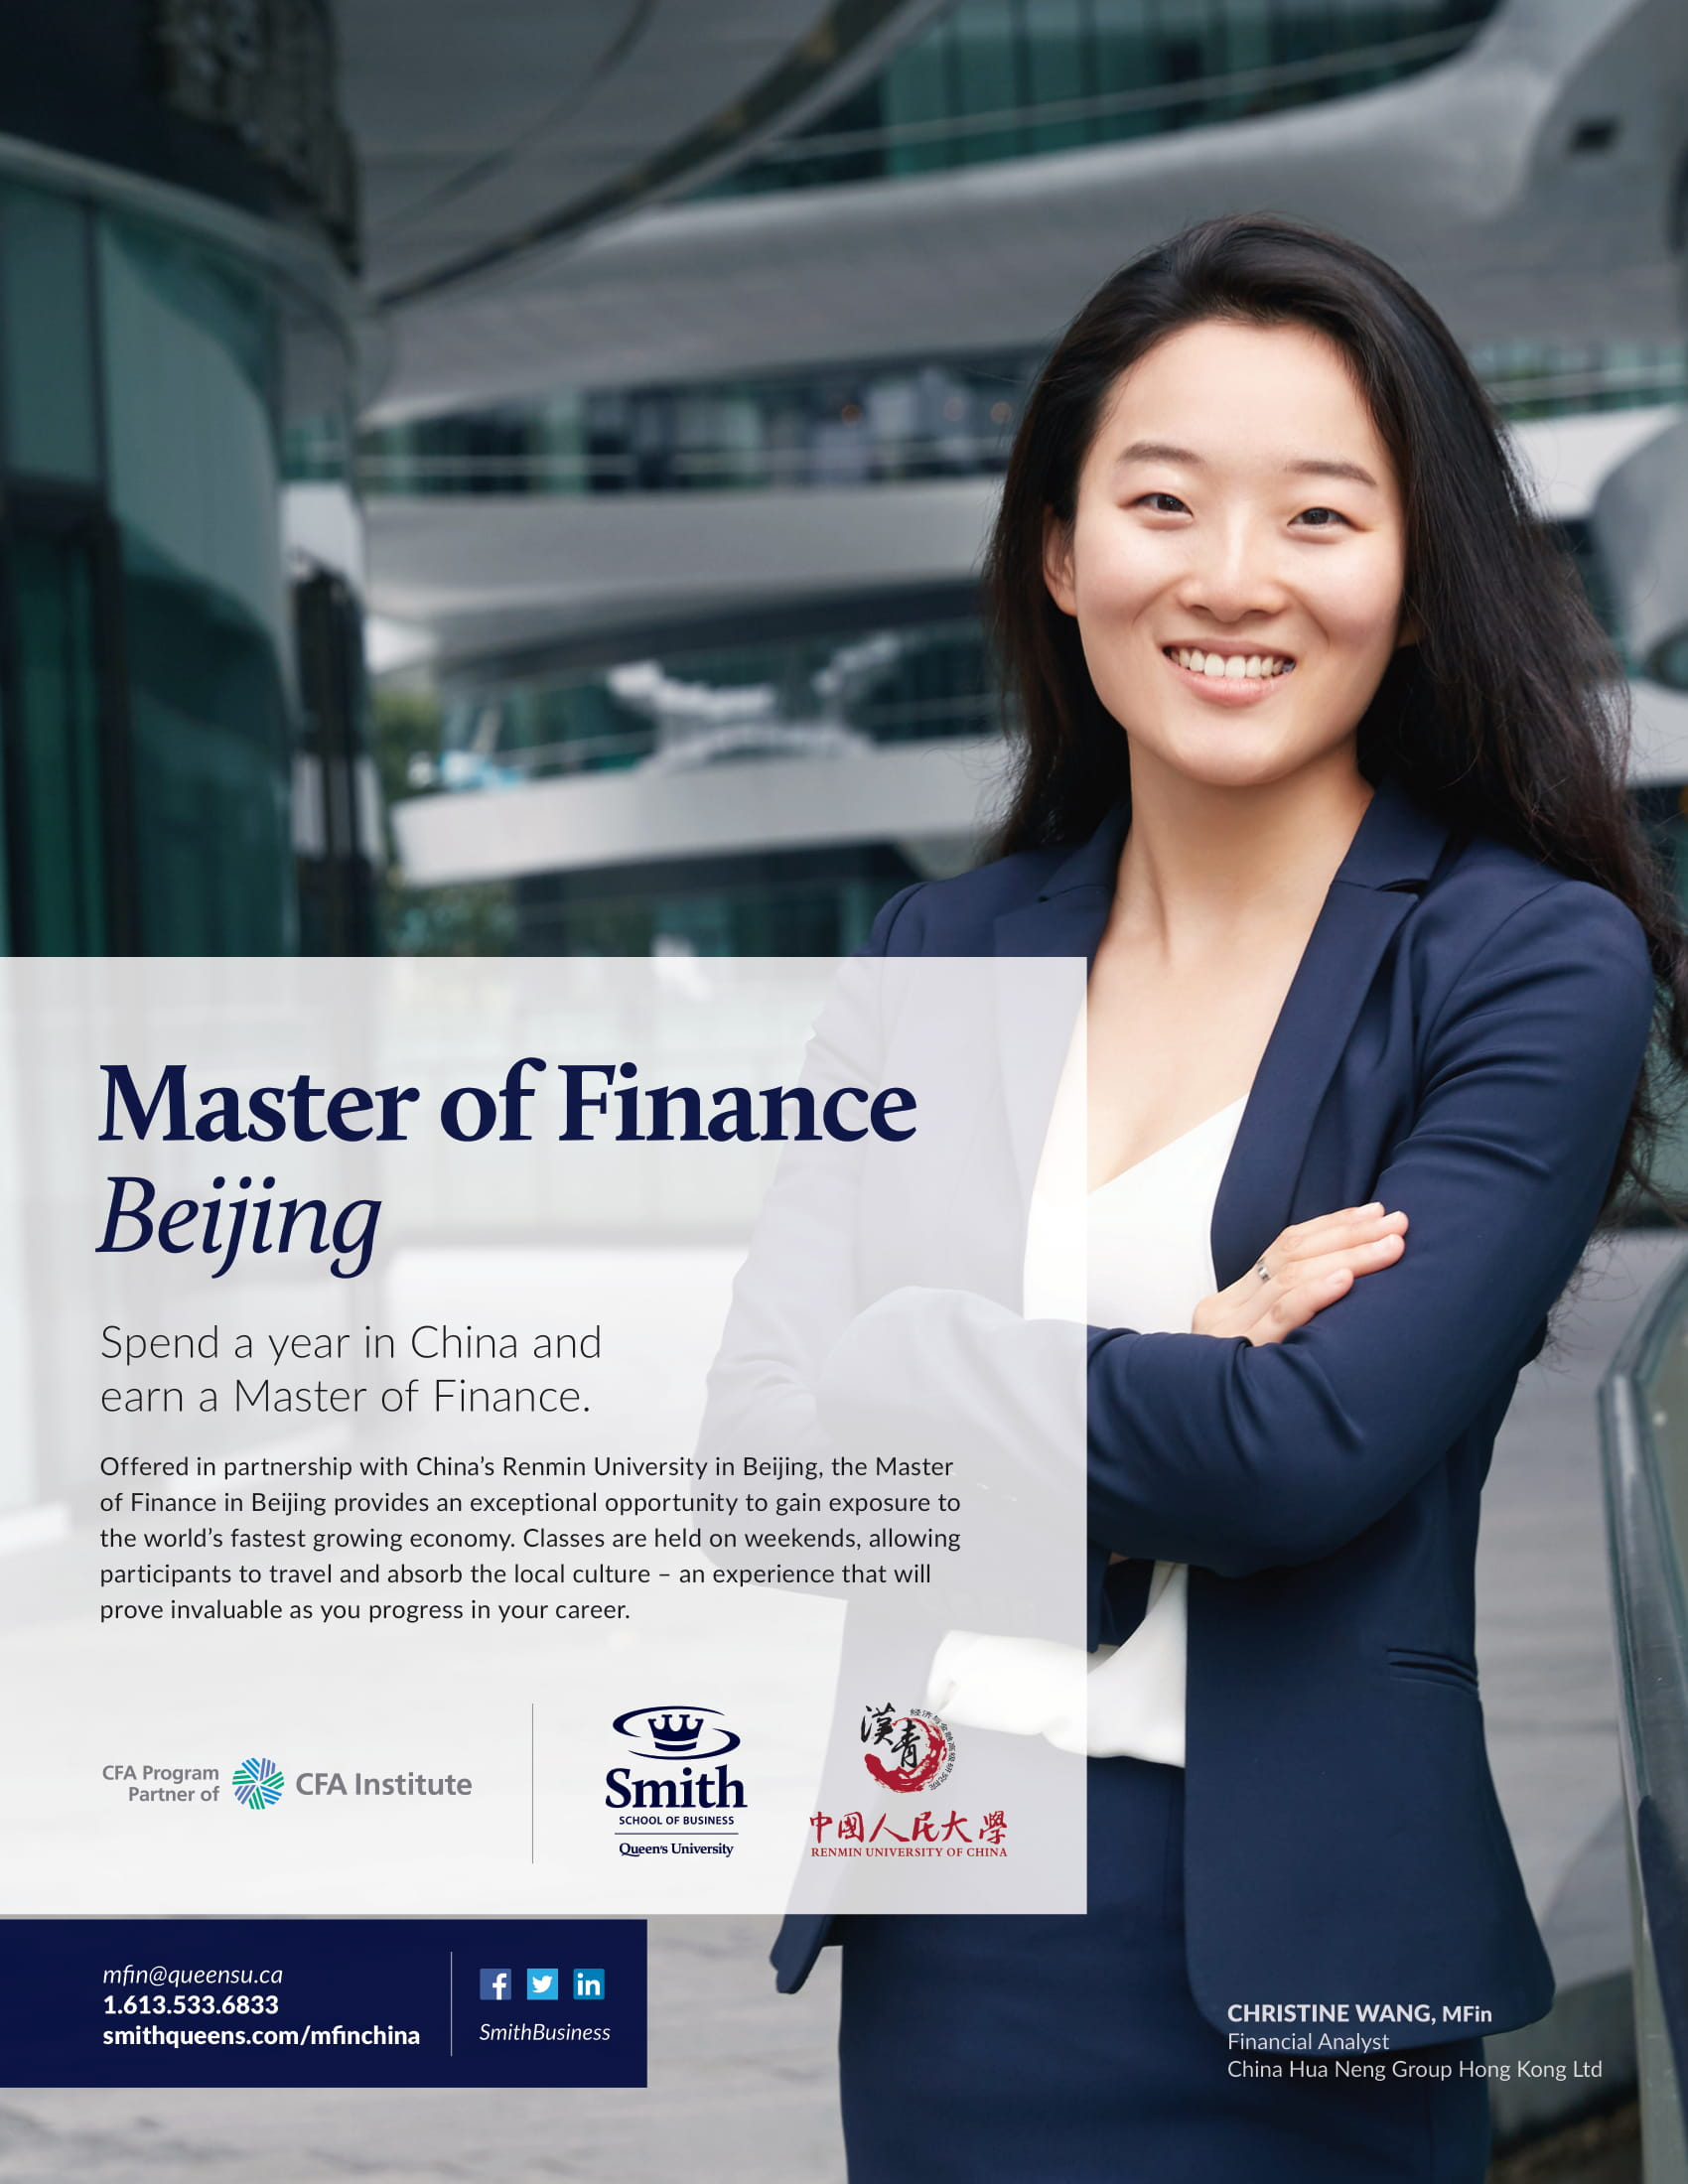 Smith Master of Finance-1.jpg